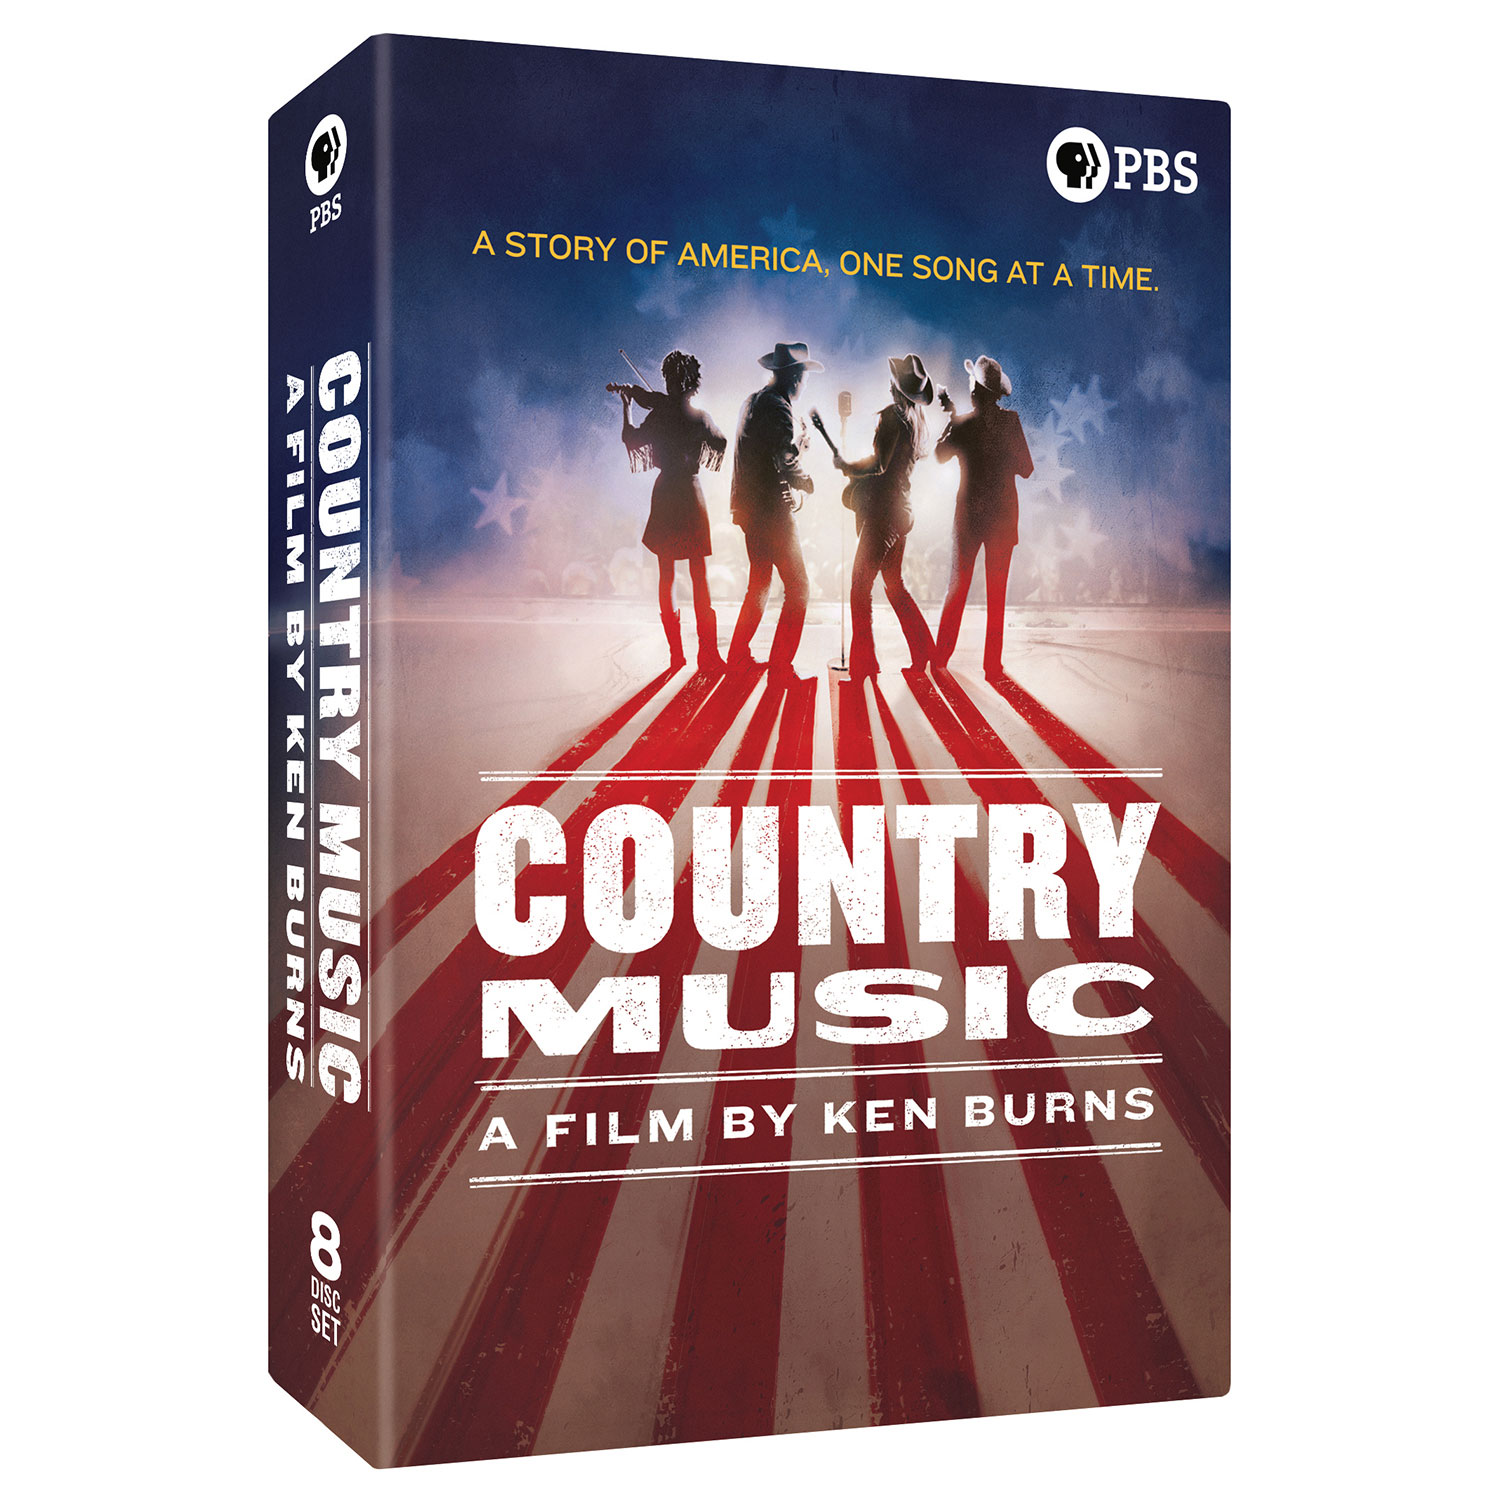 Country Music, a Film by Ken Burns ran over eight nights on PBS. The series is now available by DVD.